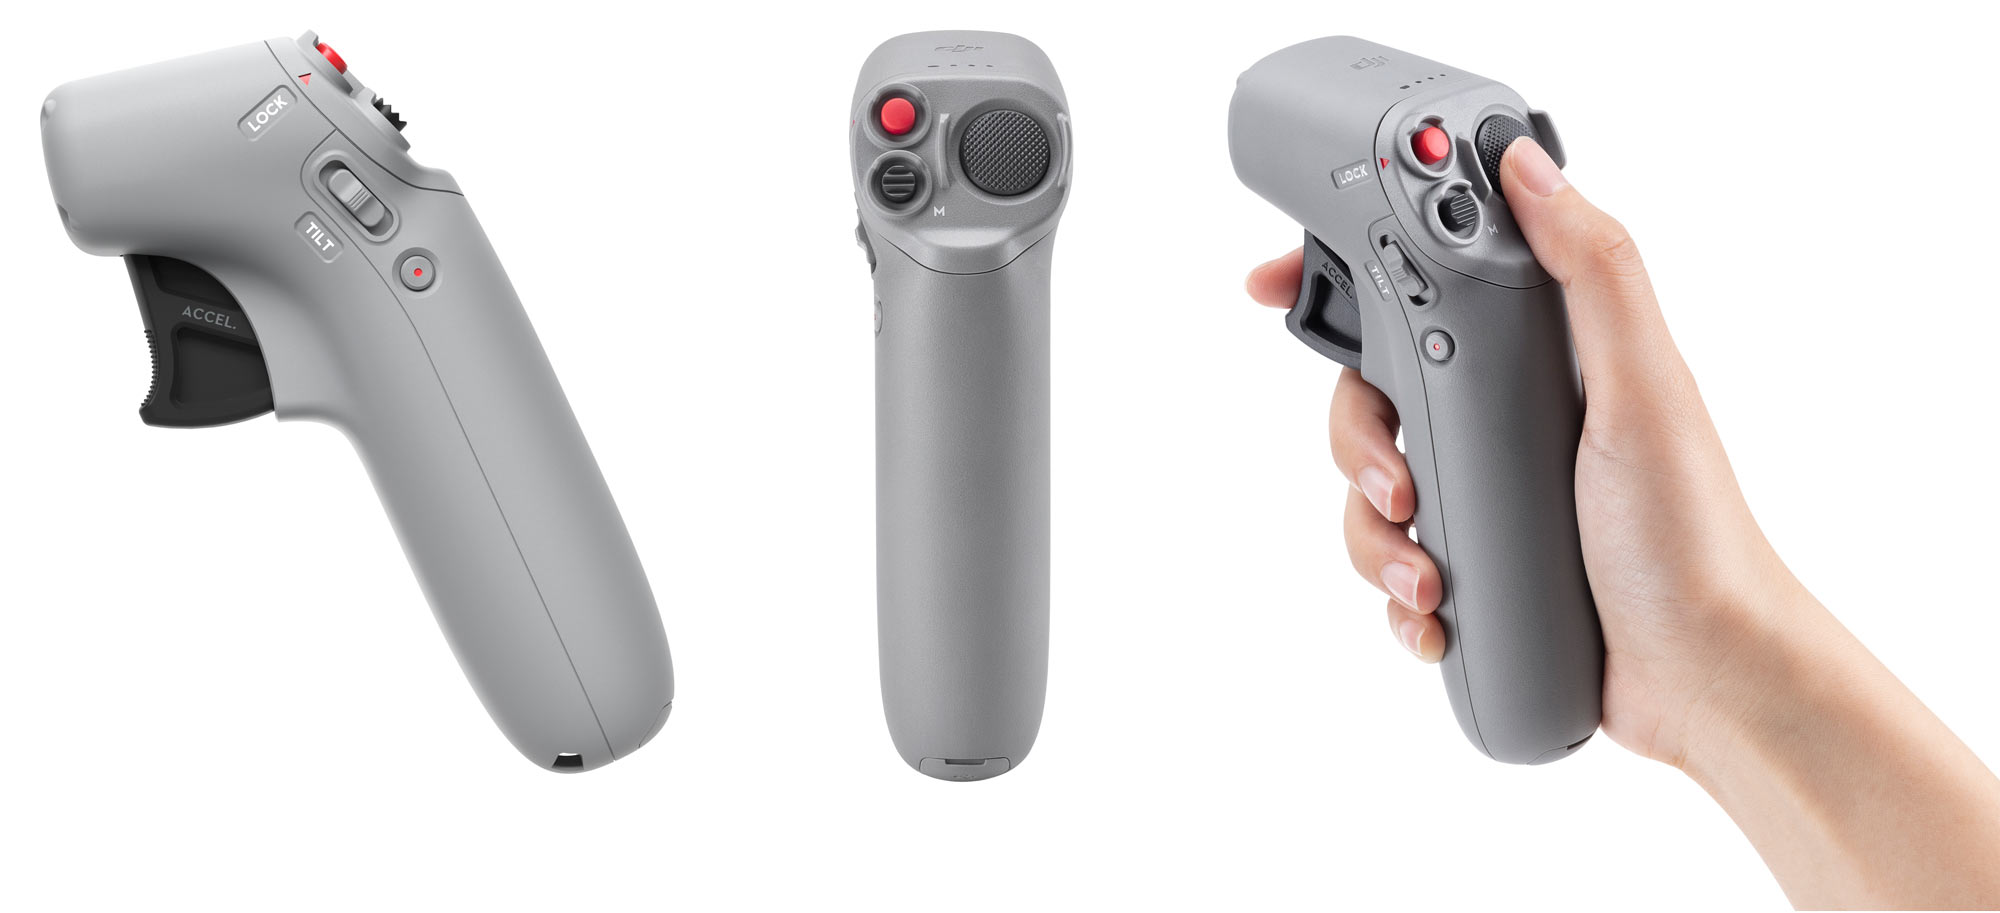 dji fpv motion controller remote joystick shown from different angles